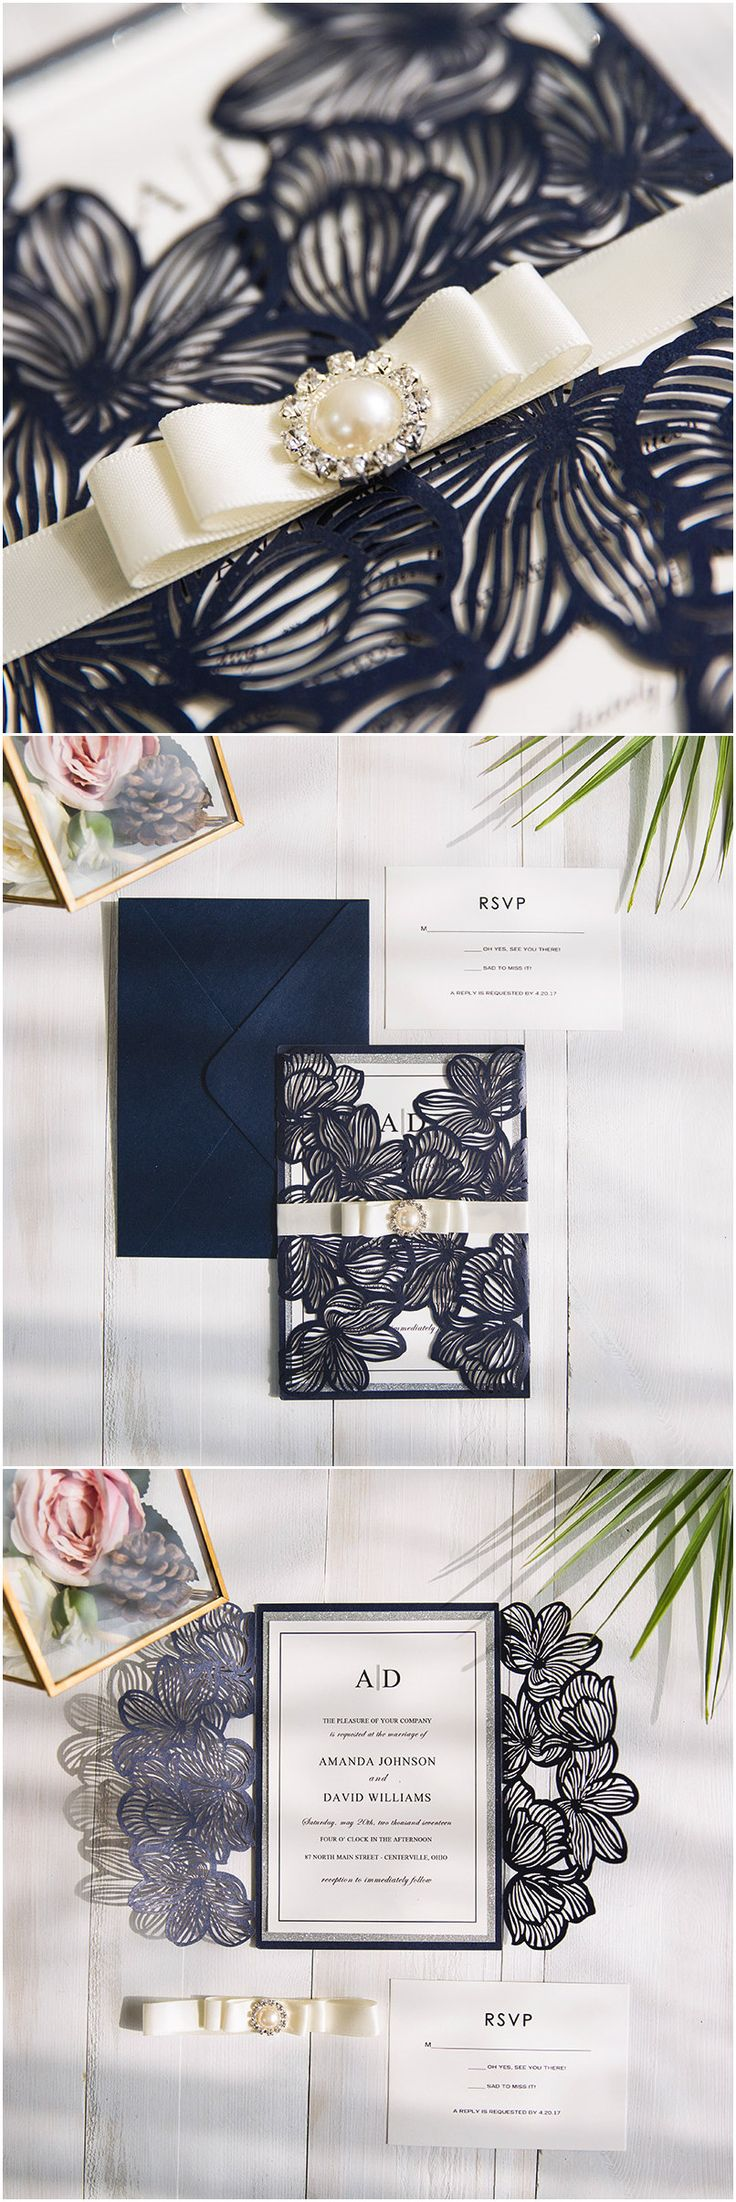 elegant deep navy blue and ivory laser cut wedding invitations with silver layered paper